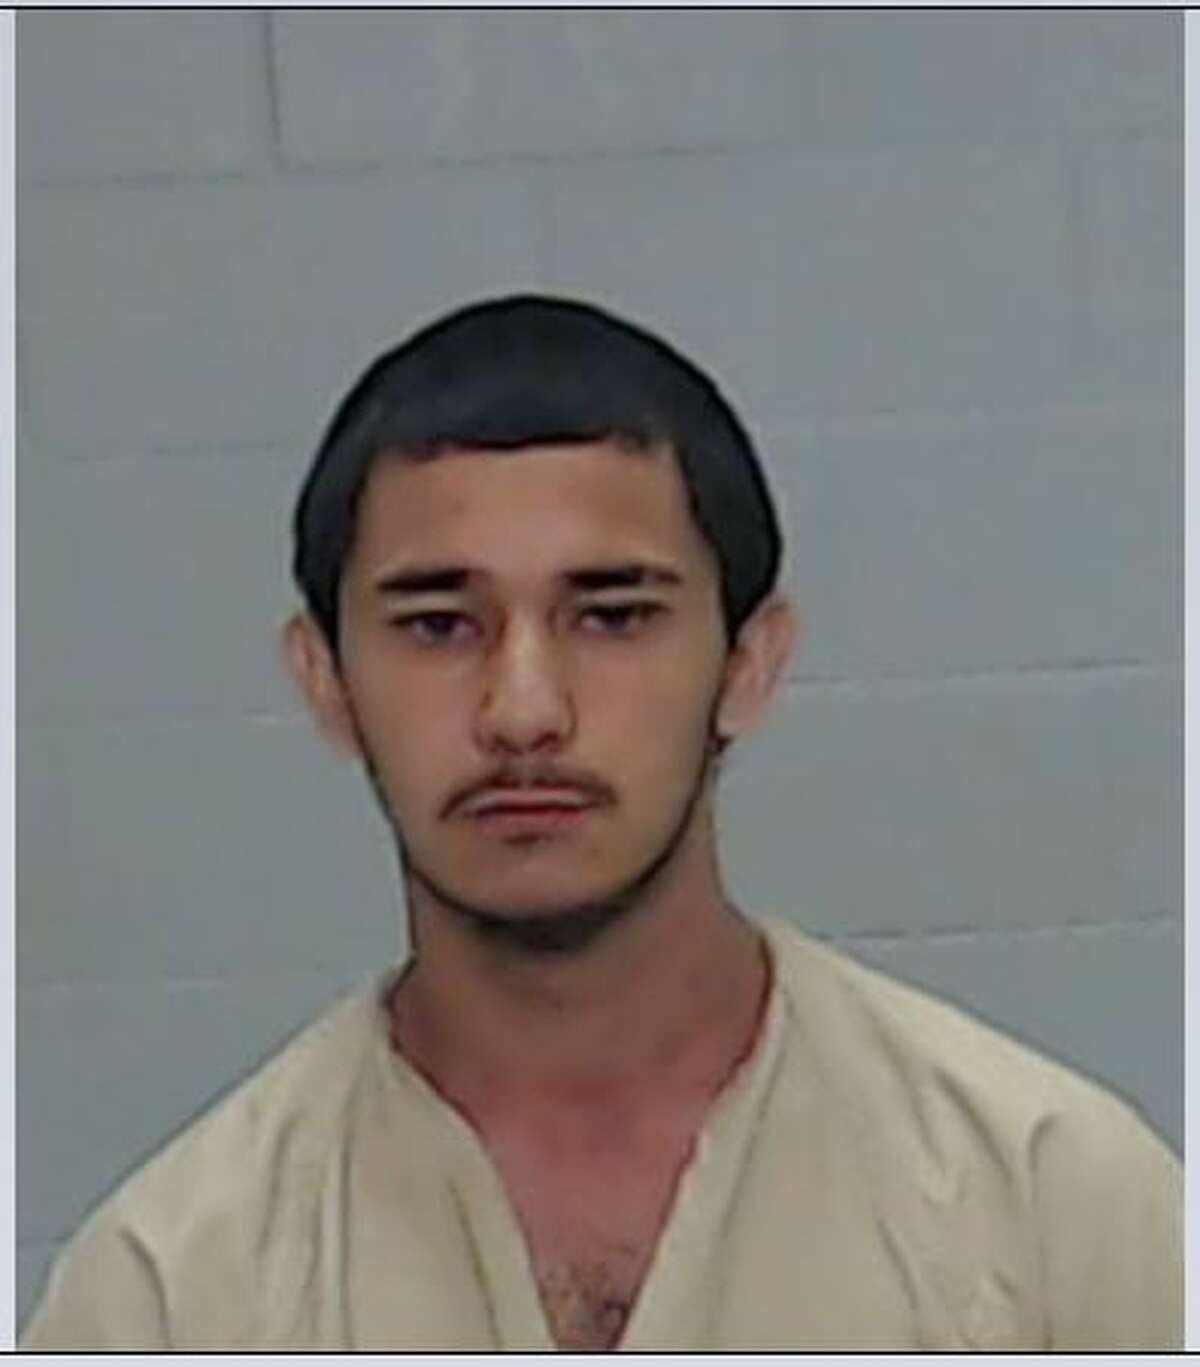 Patrick Shawn Elizondo, 18,is being held at the Ector County jail on aggravated robbery charges in connection with an armed robbery at an Odessa liquor store